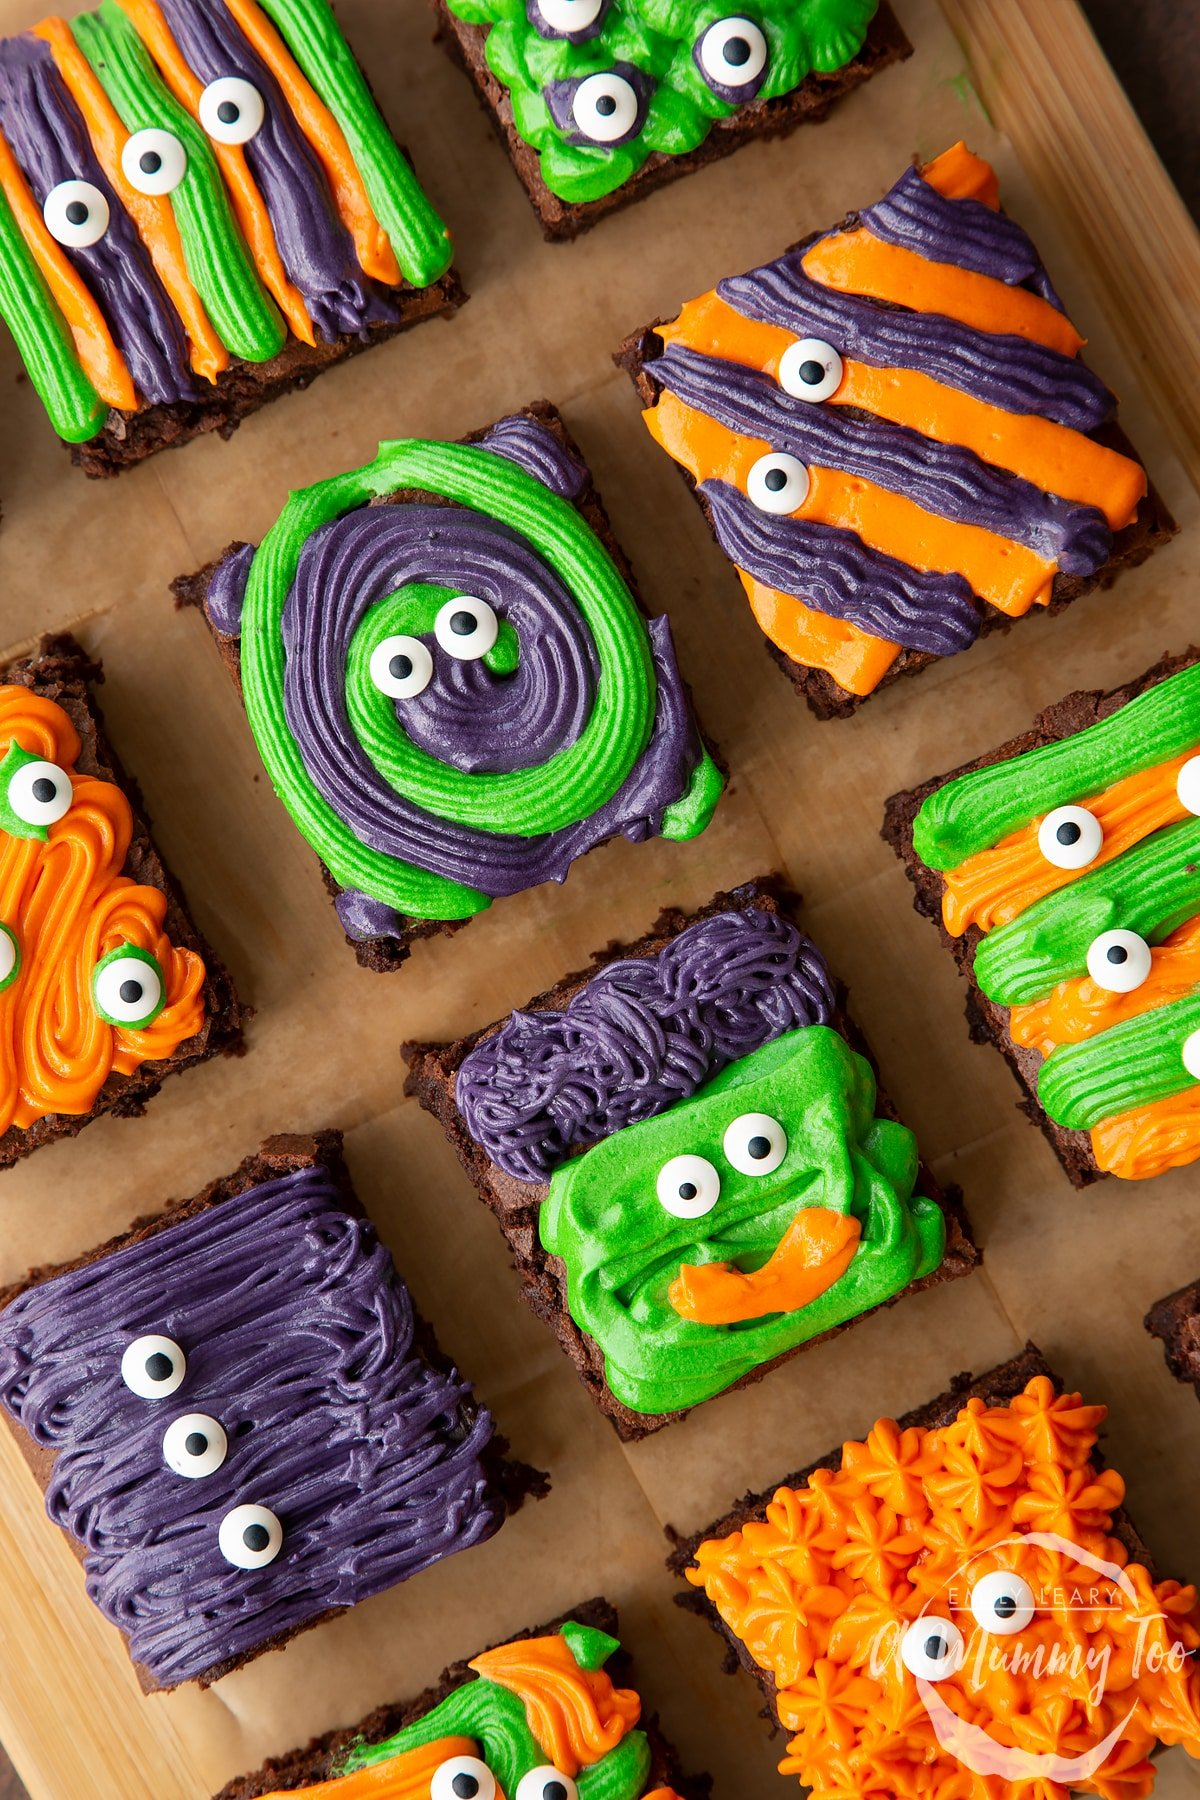 Halloween brownies arranged on a board lined with baking paper. The brownies are decorated with purple, green and orange frosting and candy eyes.